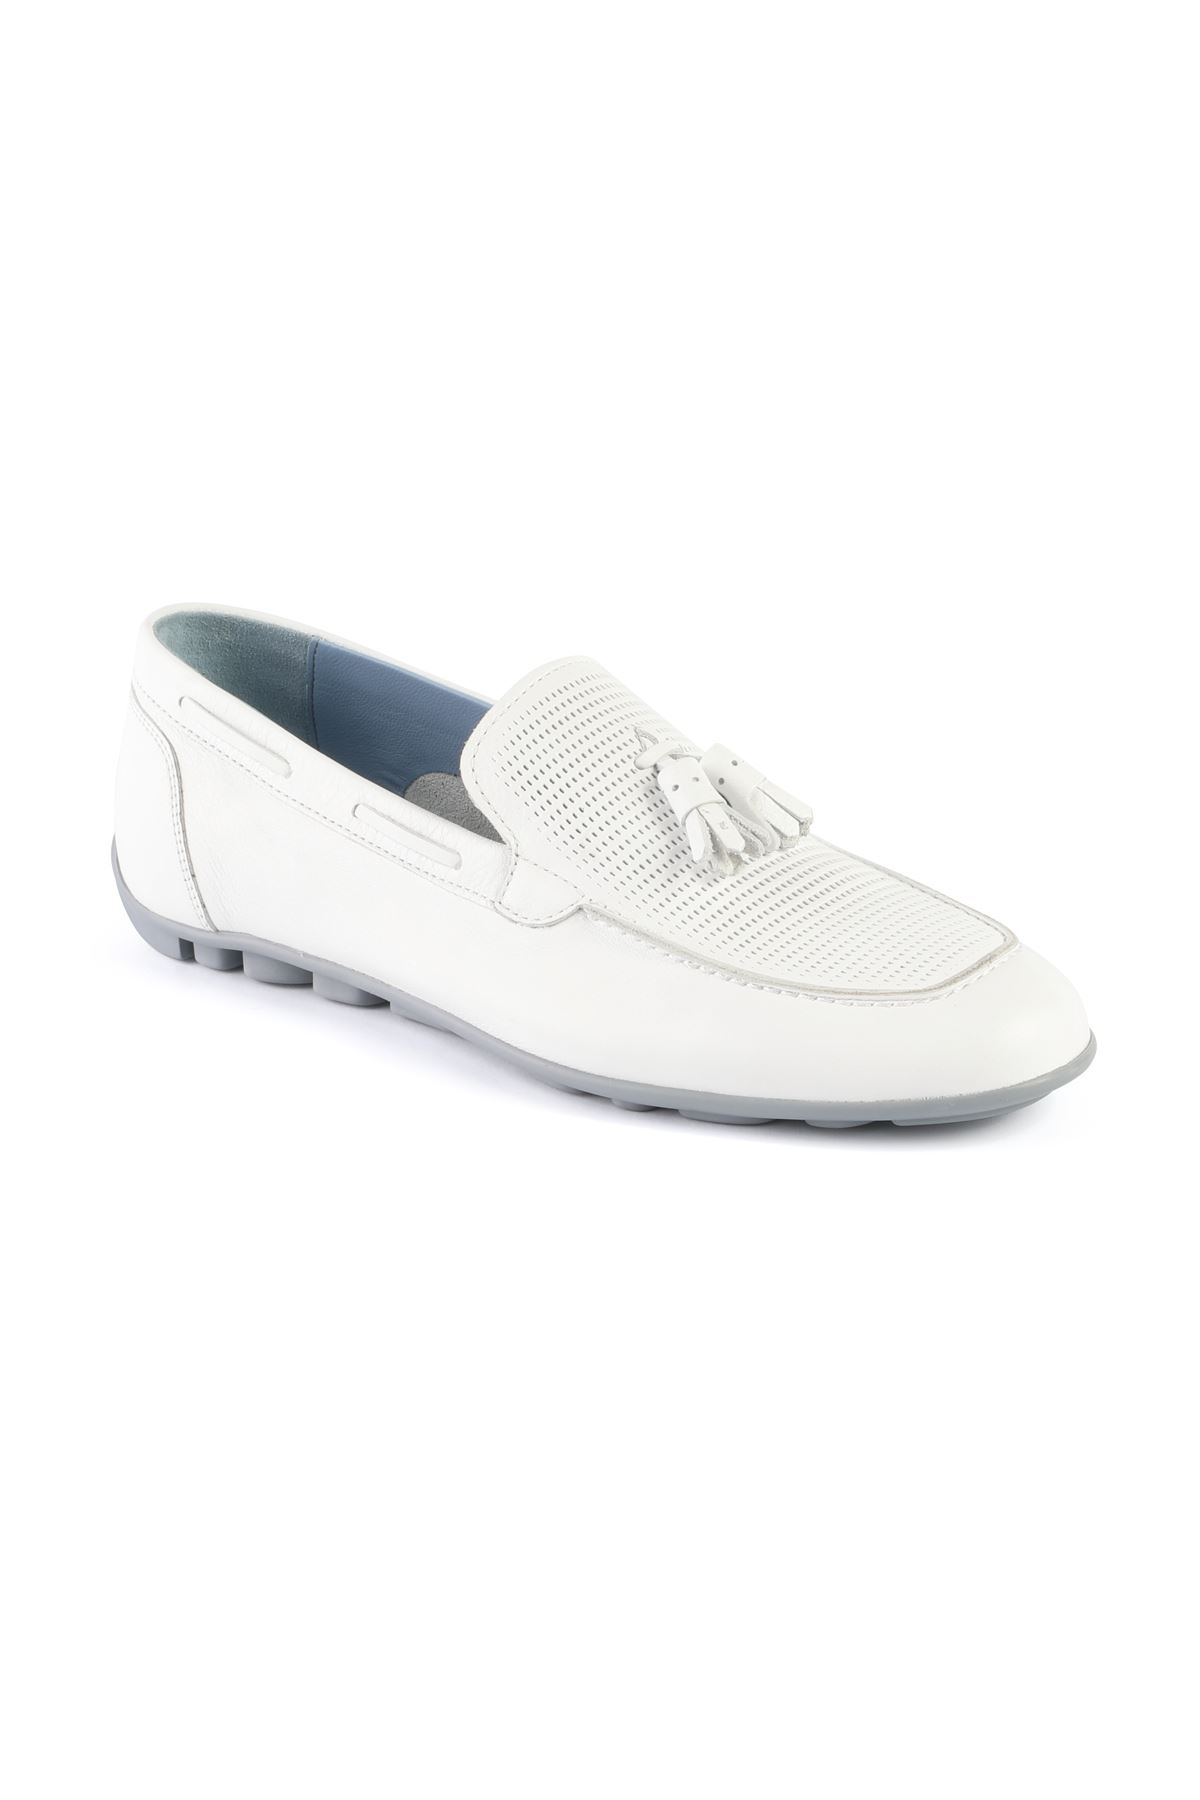 Libero L3408 White Loafer Shoes